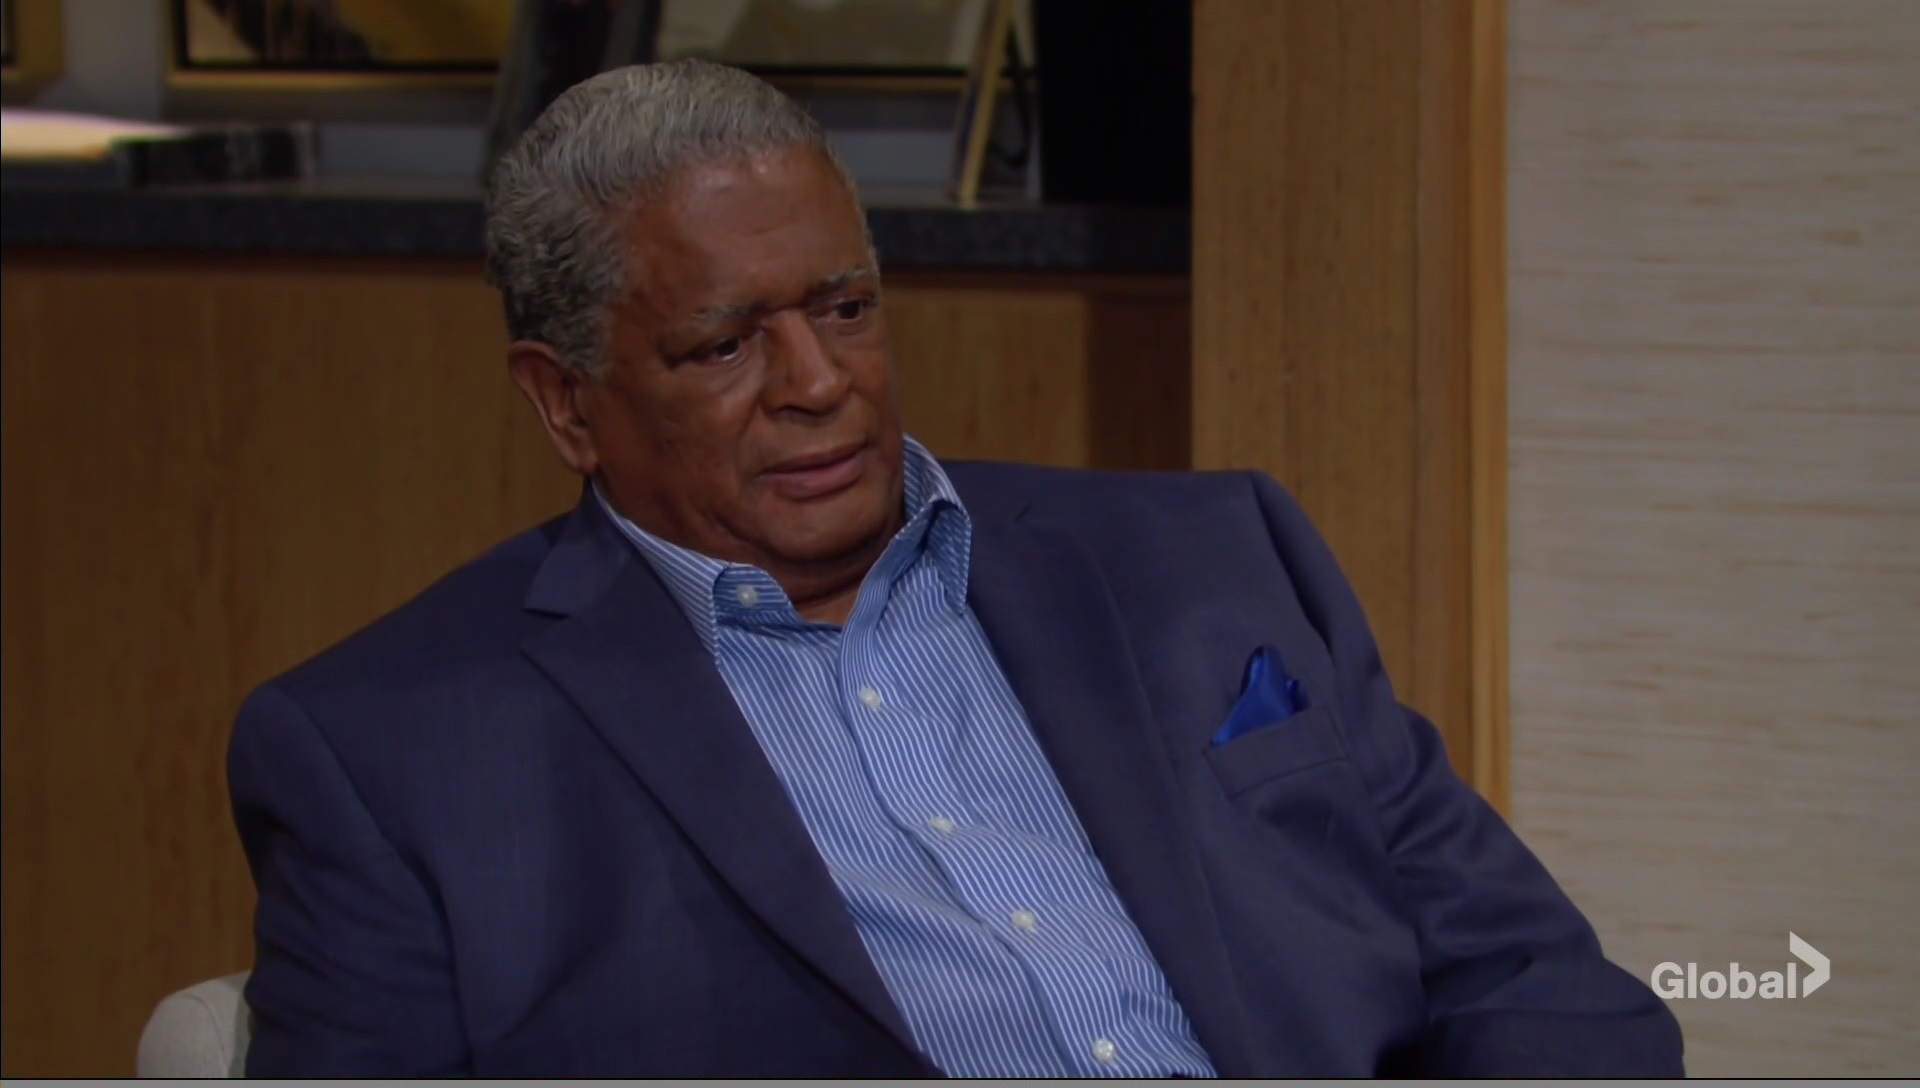 sutton played by victor young and restless